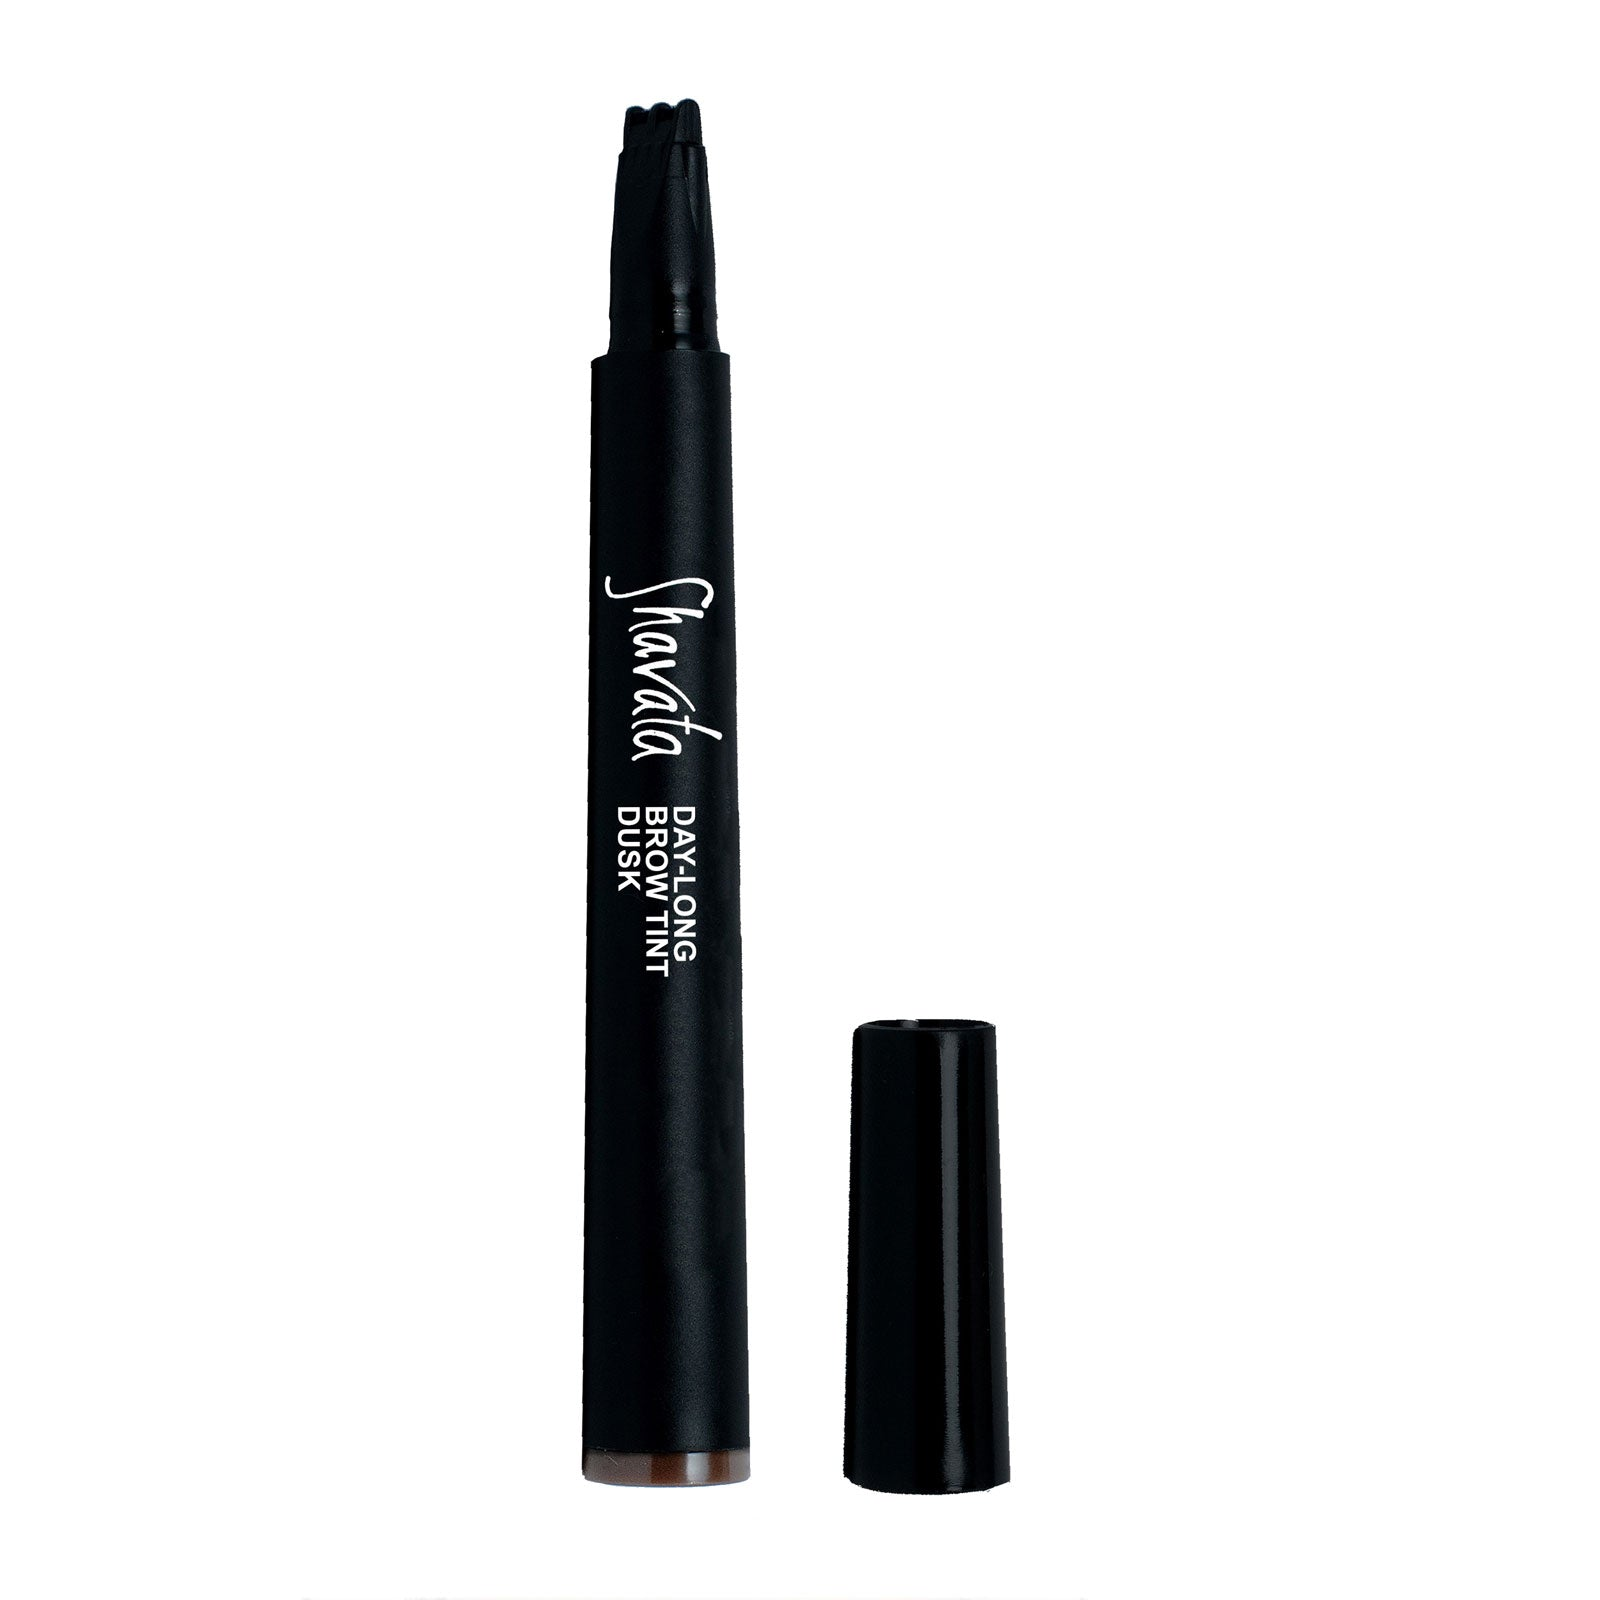 Shavata Day-Long Brow Tint 1.5ml